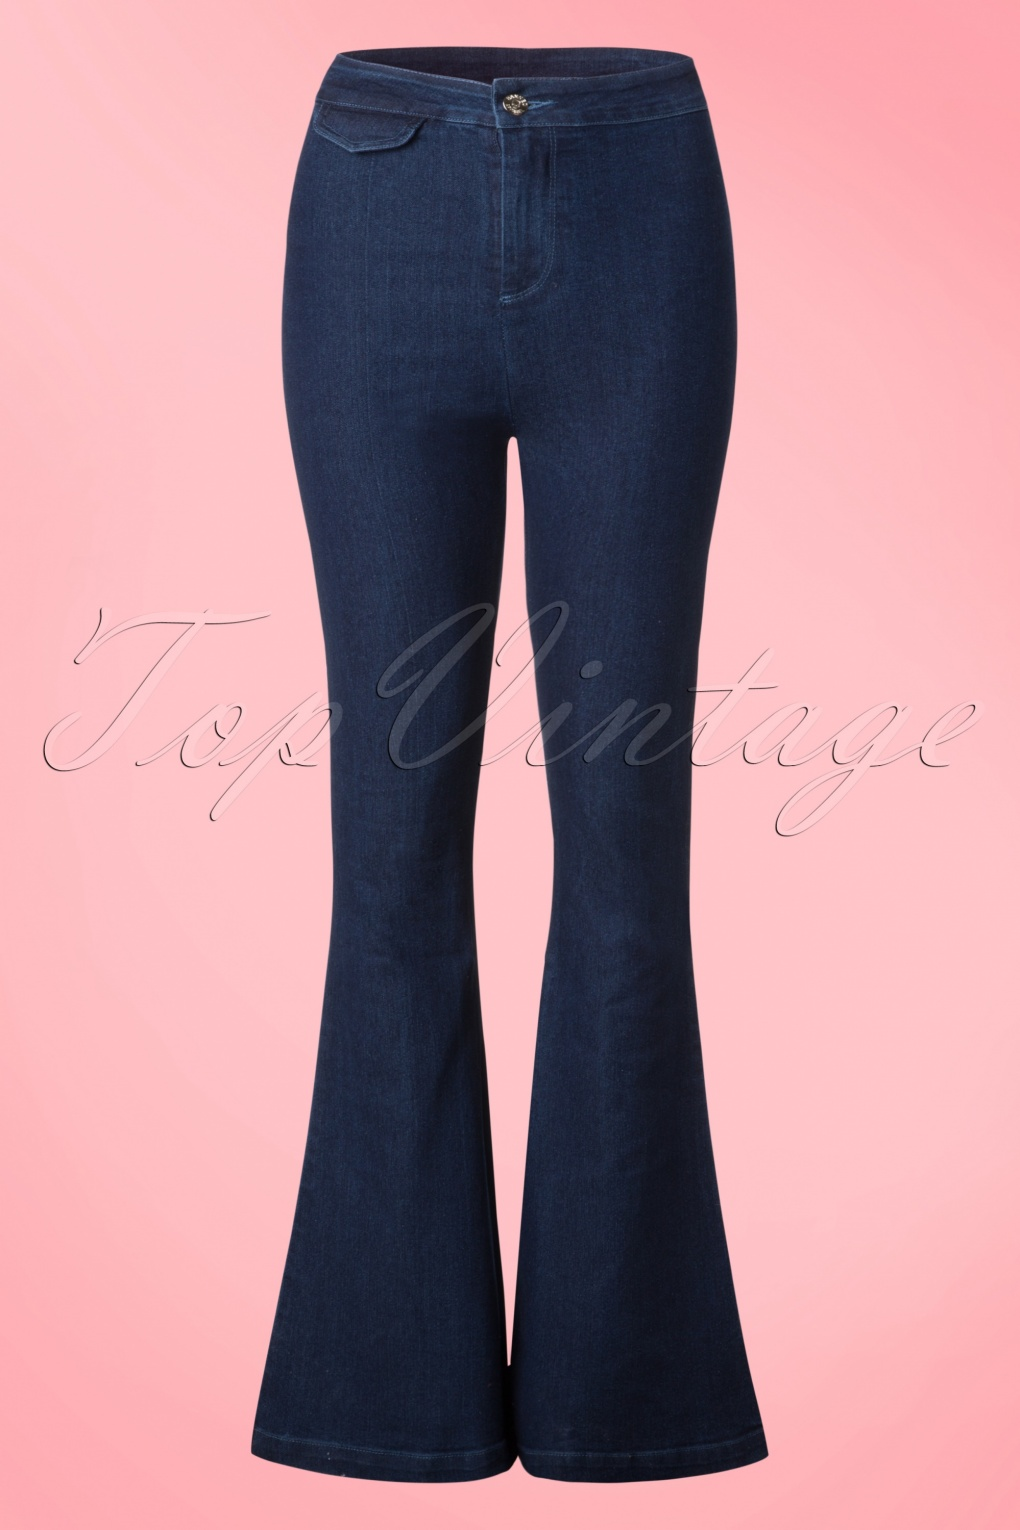 Vintage High Waisted Trousers, Sailor Pants, Jeans 70s Legs Eleven Flared Trousers in Denim £38.05 AT vintagedancer.com